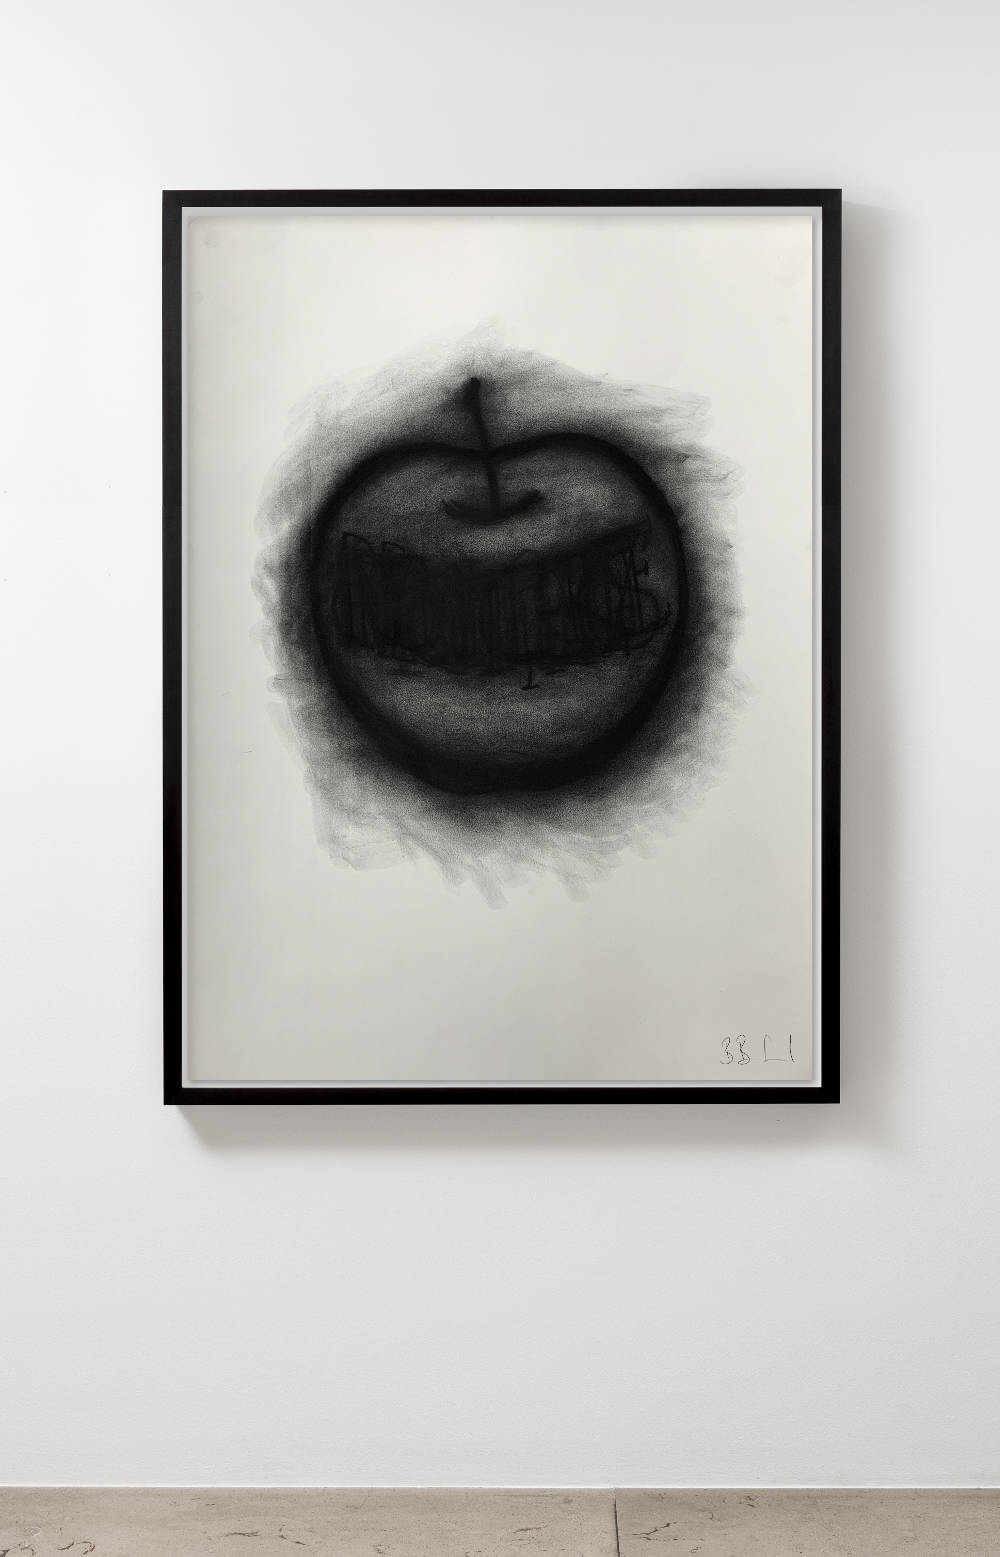 Barnaby Barford, everything you ever wanted, 2019. Charcoal on paper H100 x L70.3 cm (H39.3 x L27.6 in) H102.5 x L72.8 x D7.5 cm (H40.3 x L28.6 x D2.95 in) framed